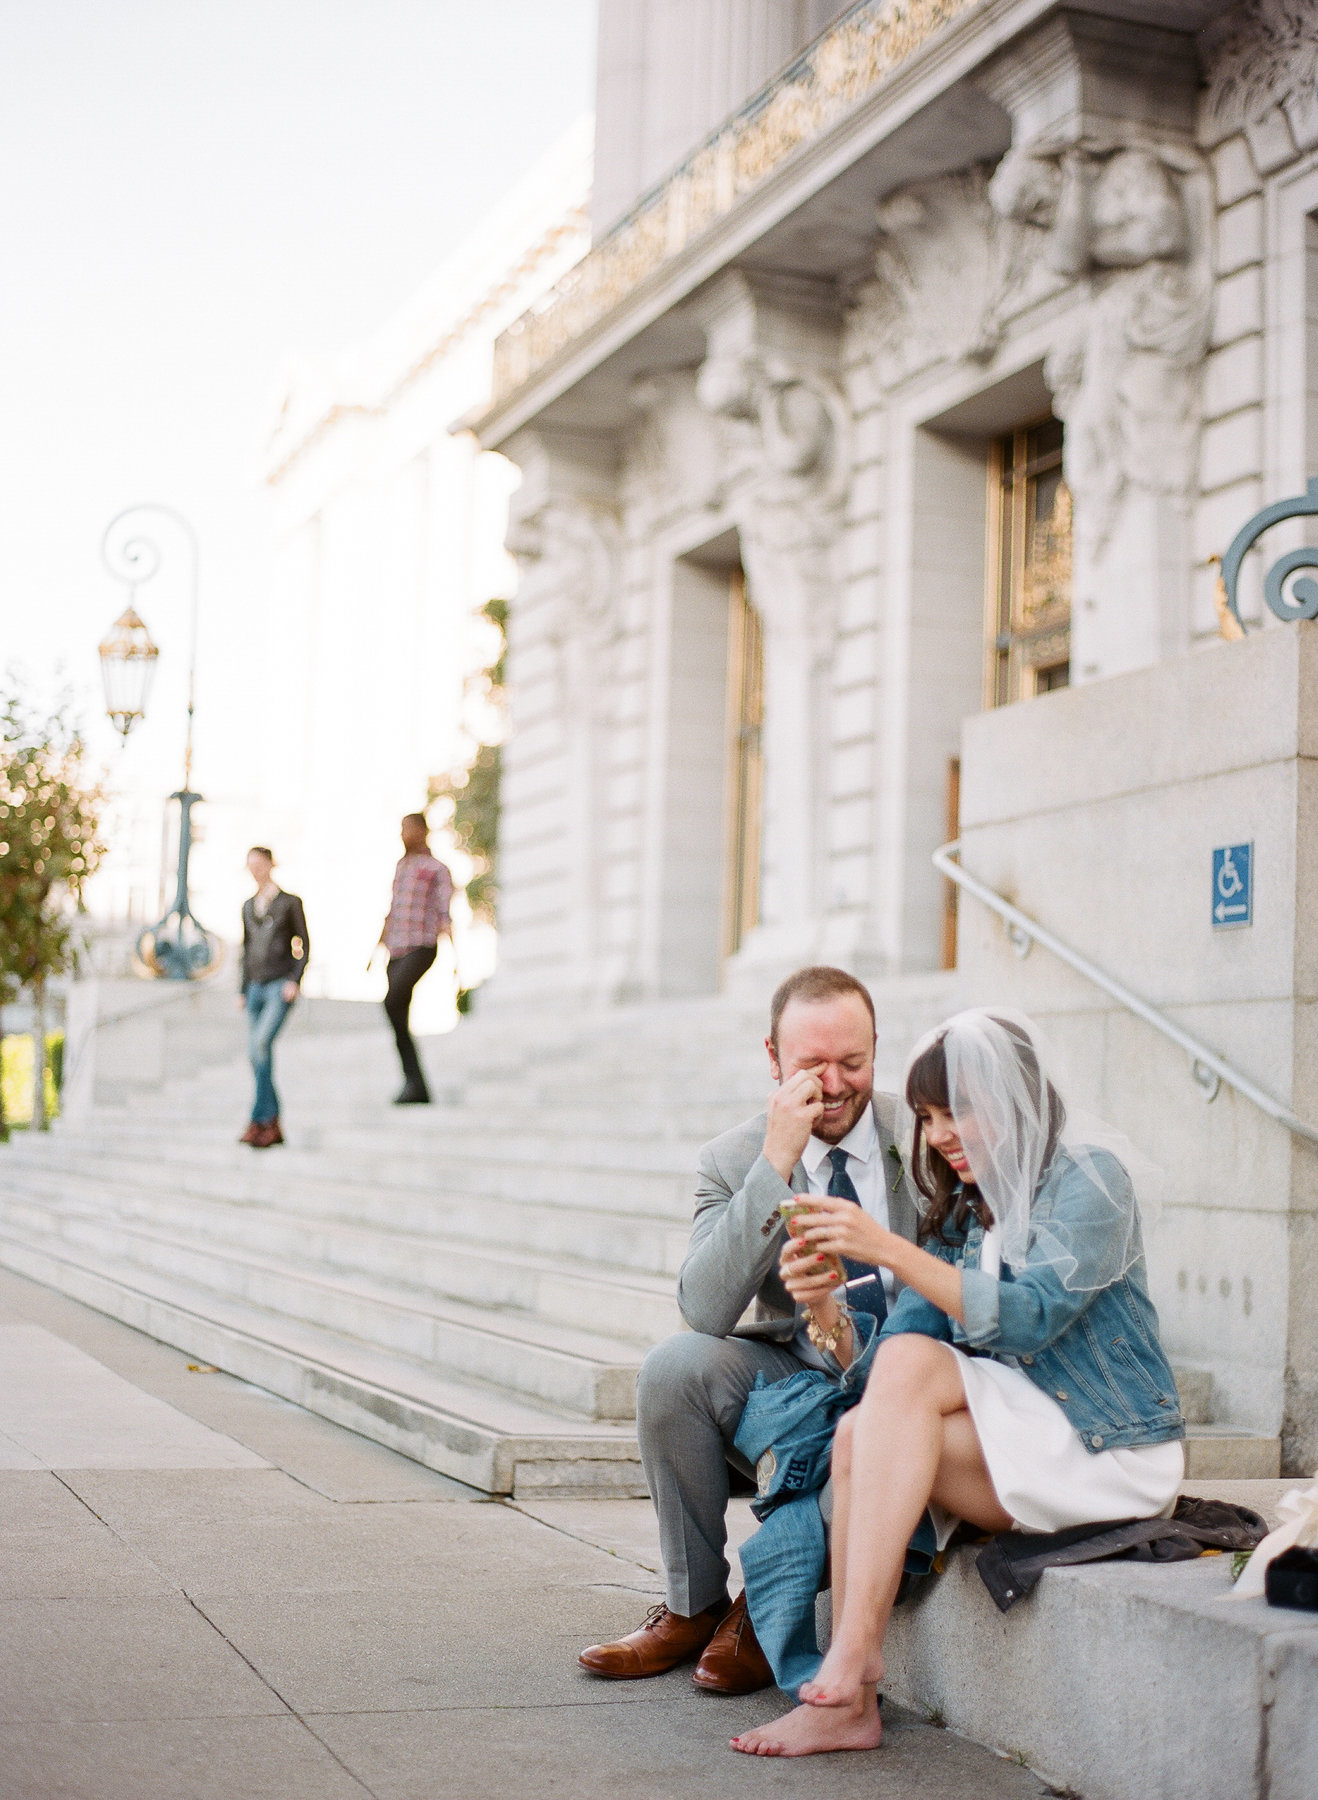 69-000035060014-san-francisco-city-hall-wedding-michaela-joy-photography